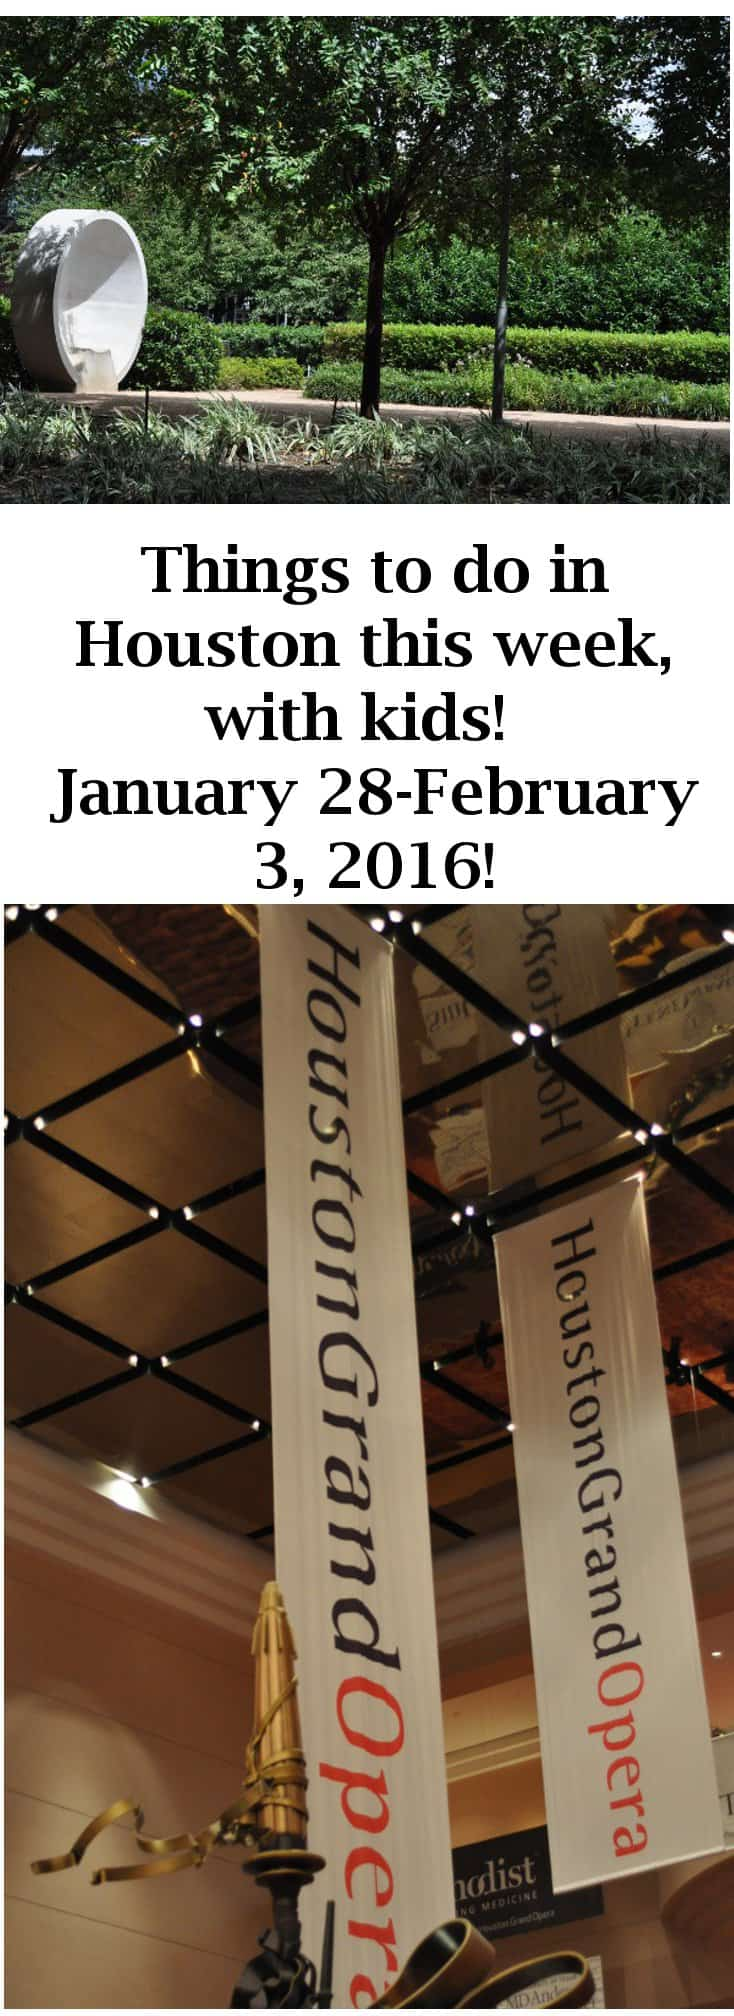 Things to do in Houston today, and this weekend, with kids! January 28, 29, 30, 31, February 1, 2, 3, 2016